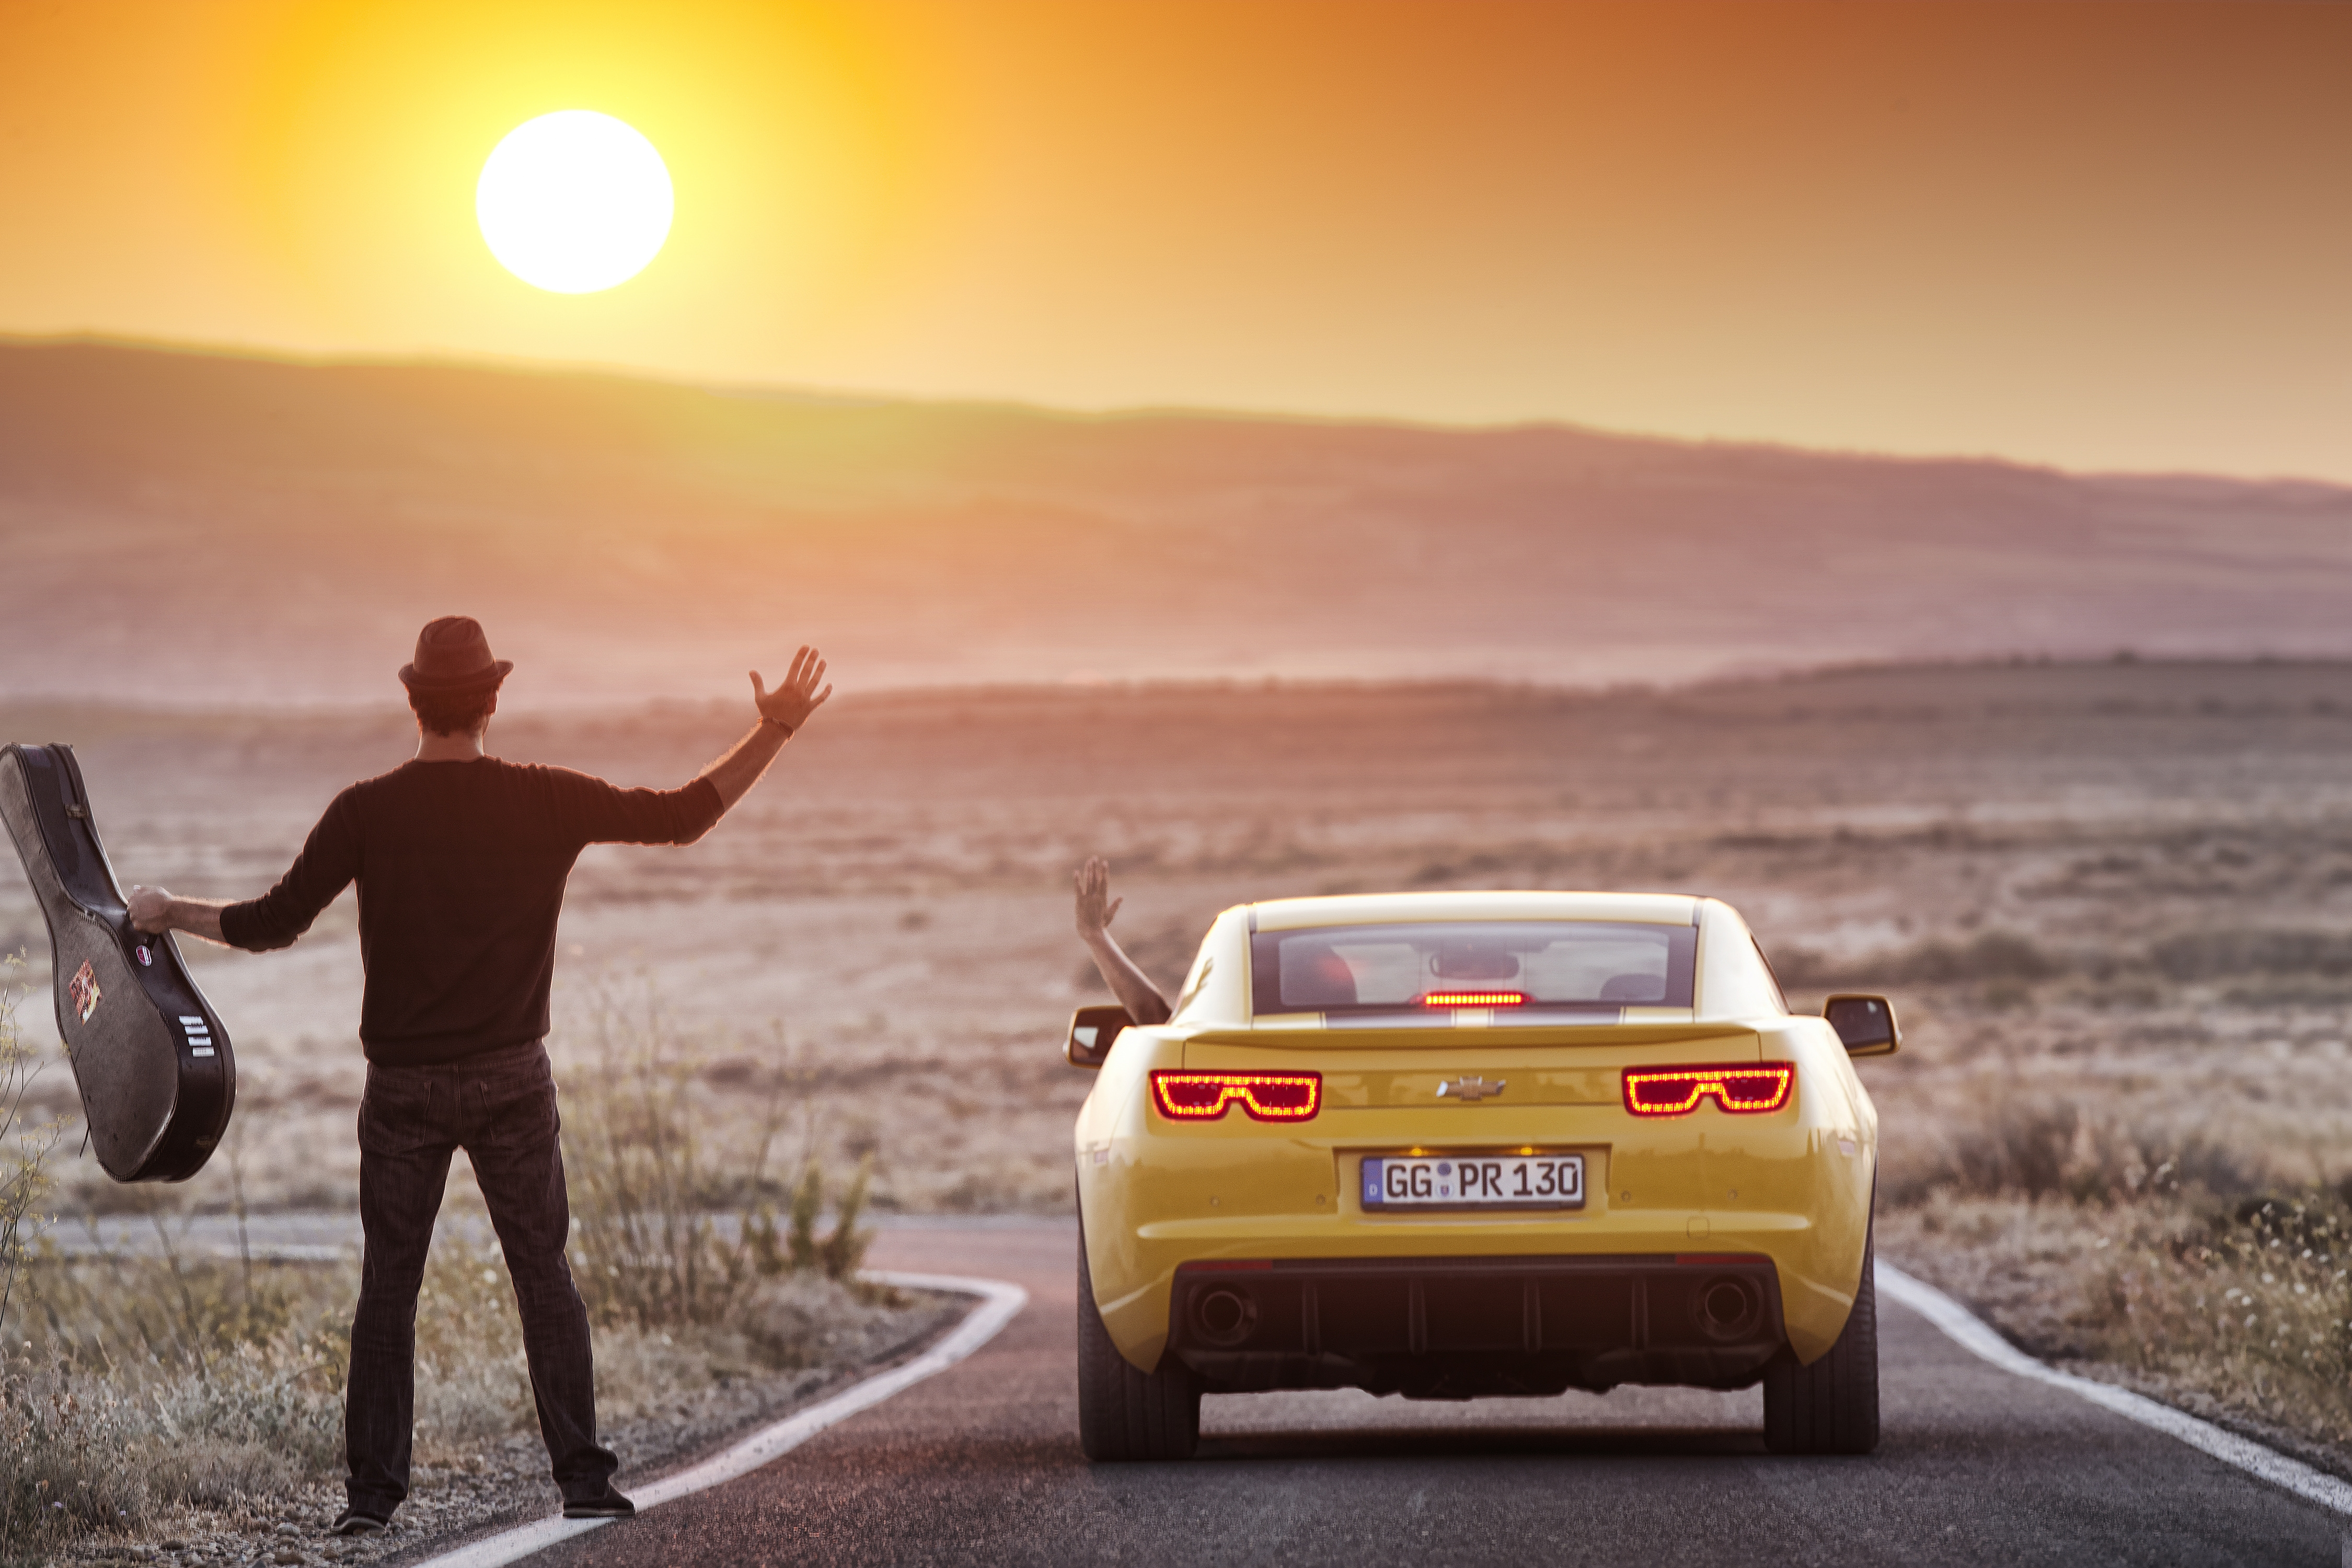 152162 Screensavers and Wallpapers Guy for phone. Download Landscape, Nature, Sun, Chevrolet, Mountain, Miscellanea, Miscellaneous, Guitar, Guy, 2012, Camaro, Situation pictures for free